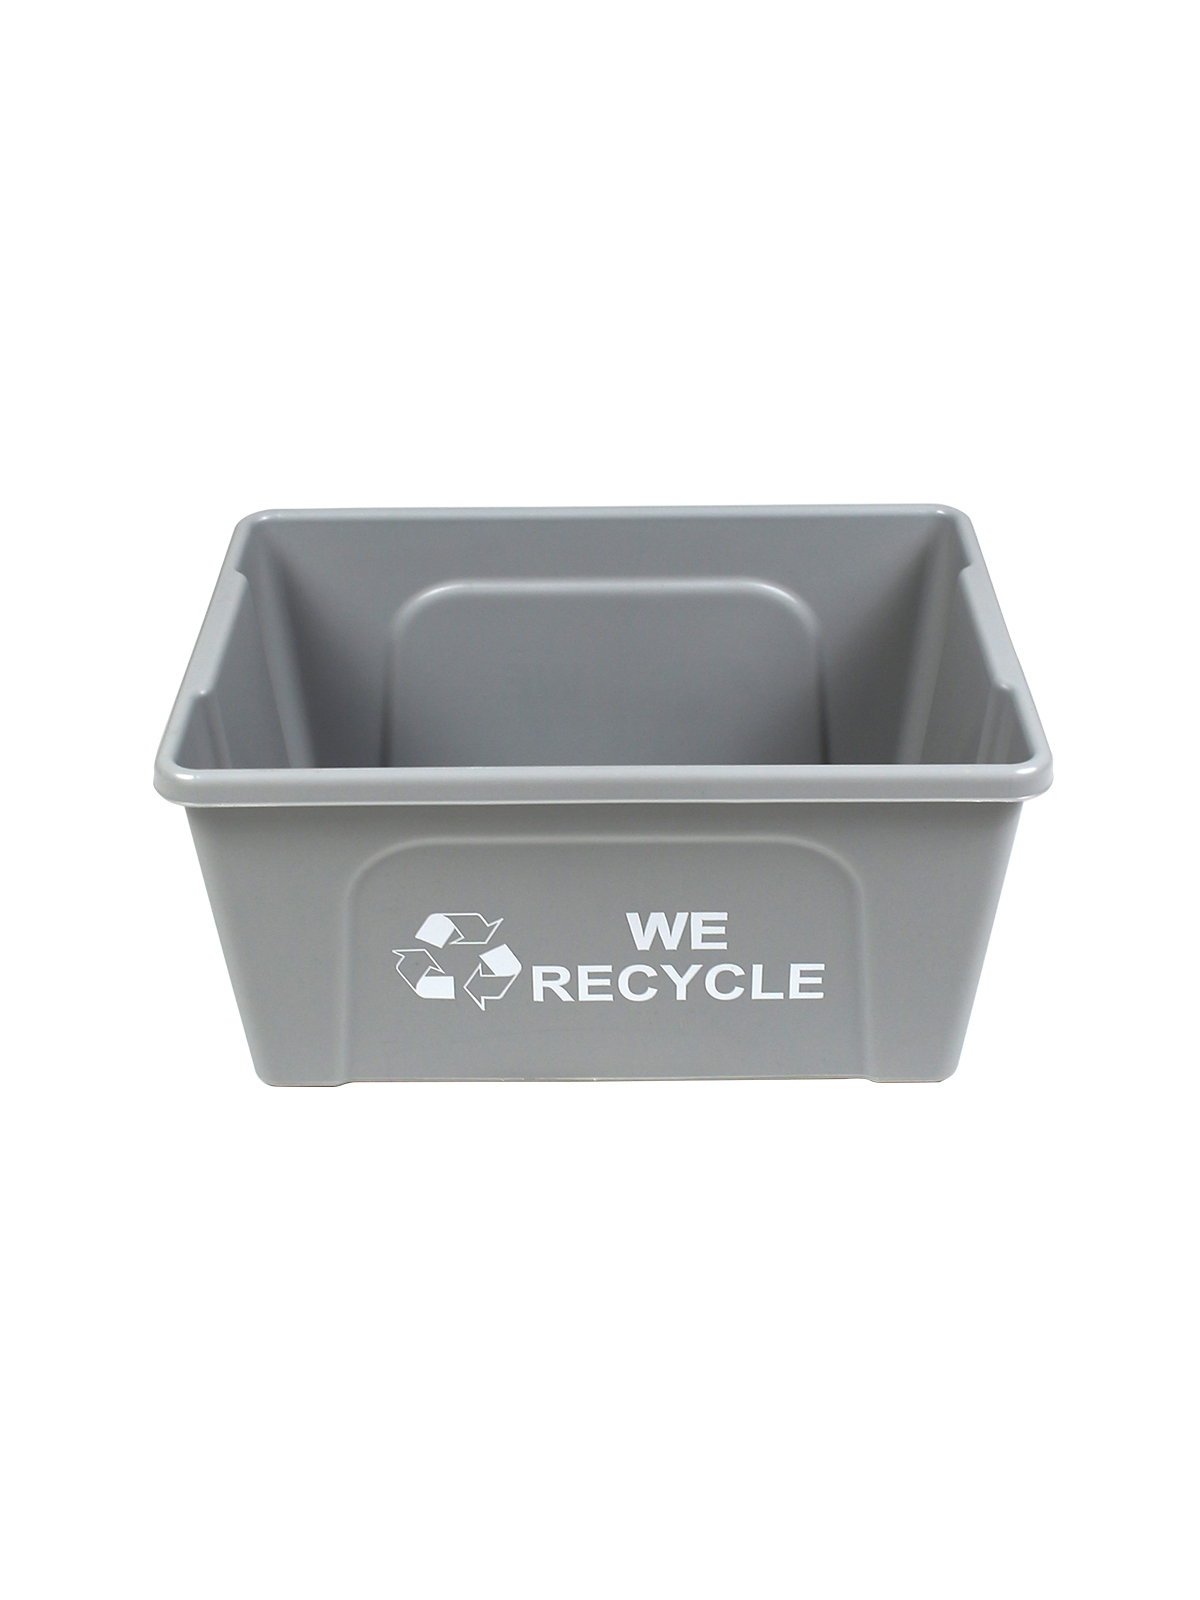 DESKSIDE RECYCLER - Single - Body - We Recycle - Executive Grey